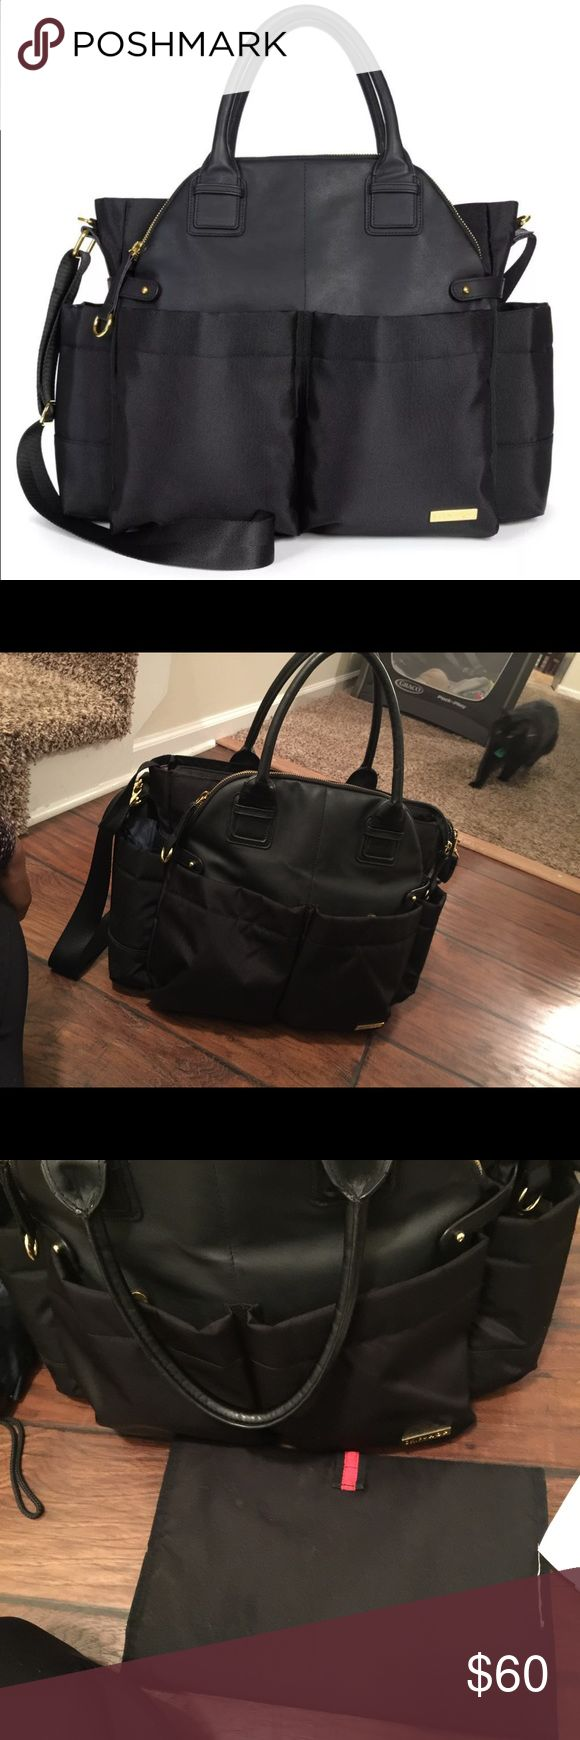 Skip hop Chelsea downtown diaper bag The most stylish diaper Back ever.!!!Got tons of space . People can't believe is a diaper bag 😻 Skip Hop Bags Baby Bags